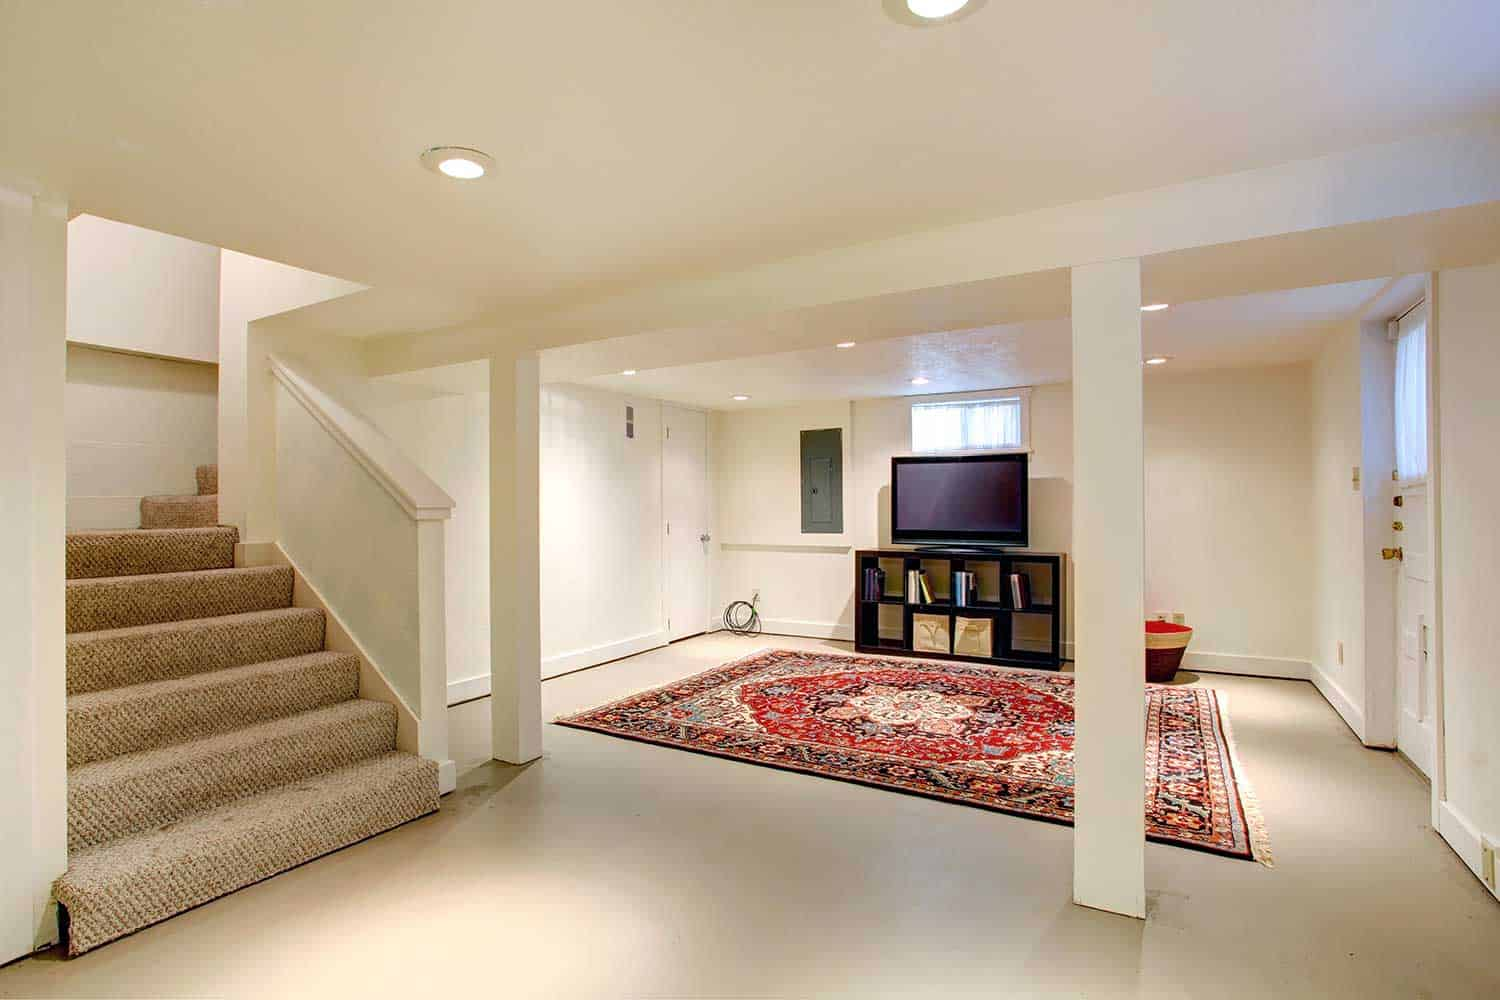 House basement room interior with TV